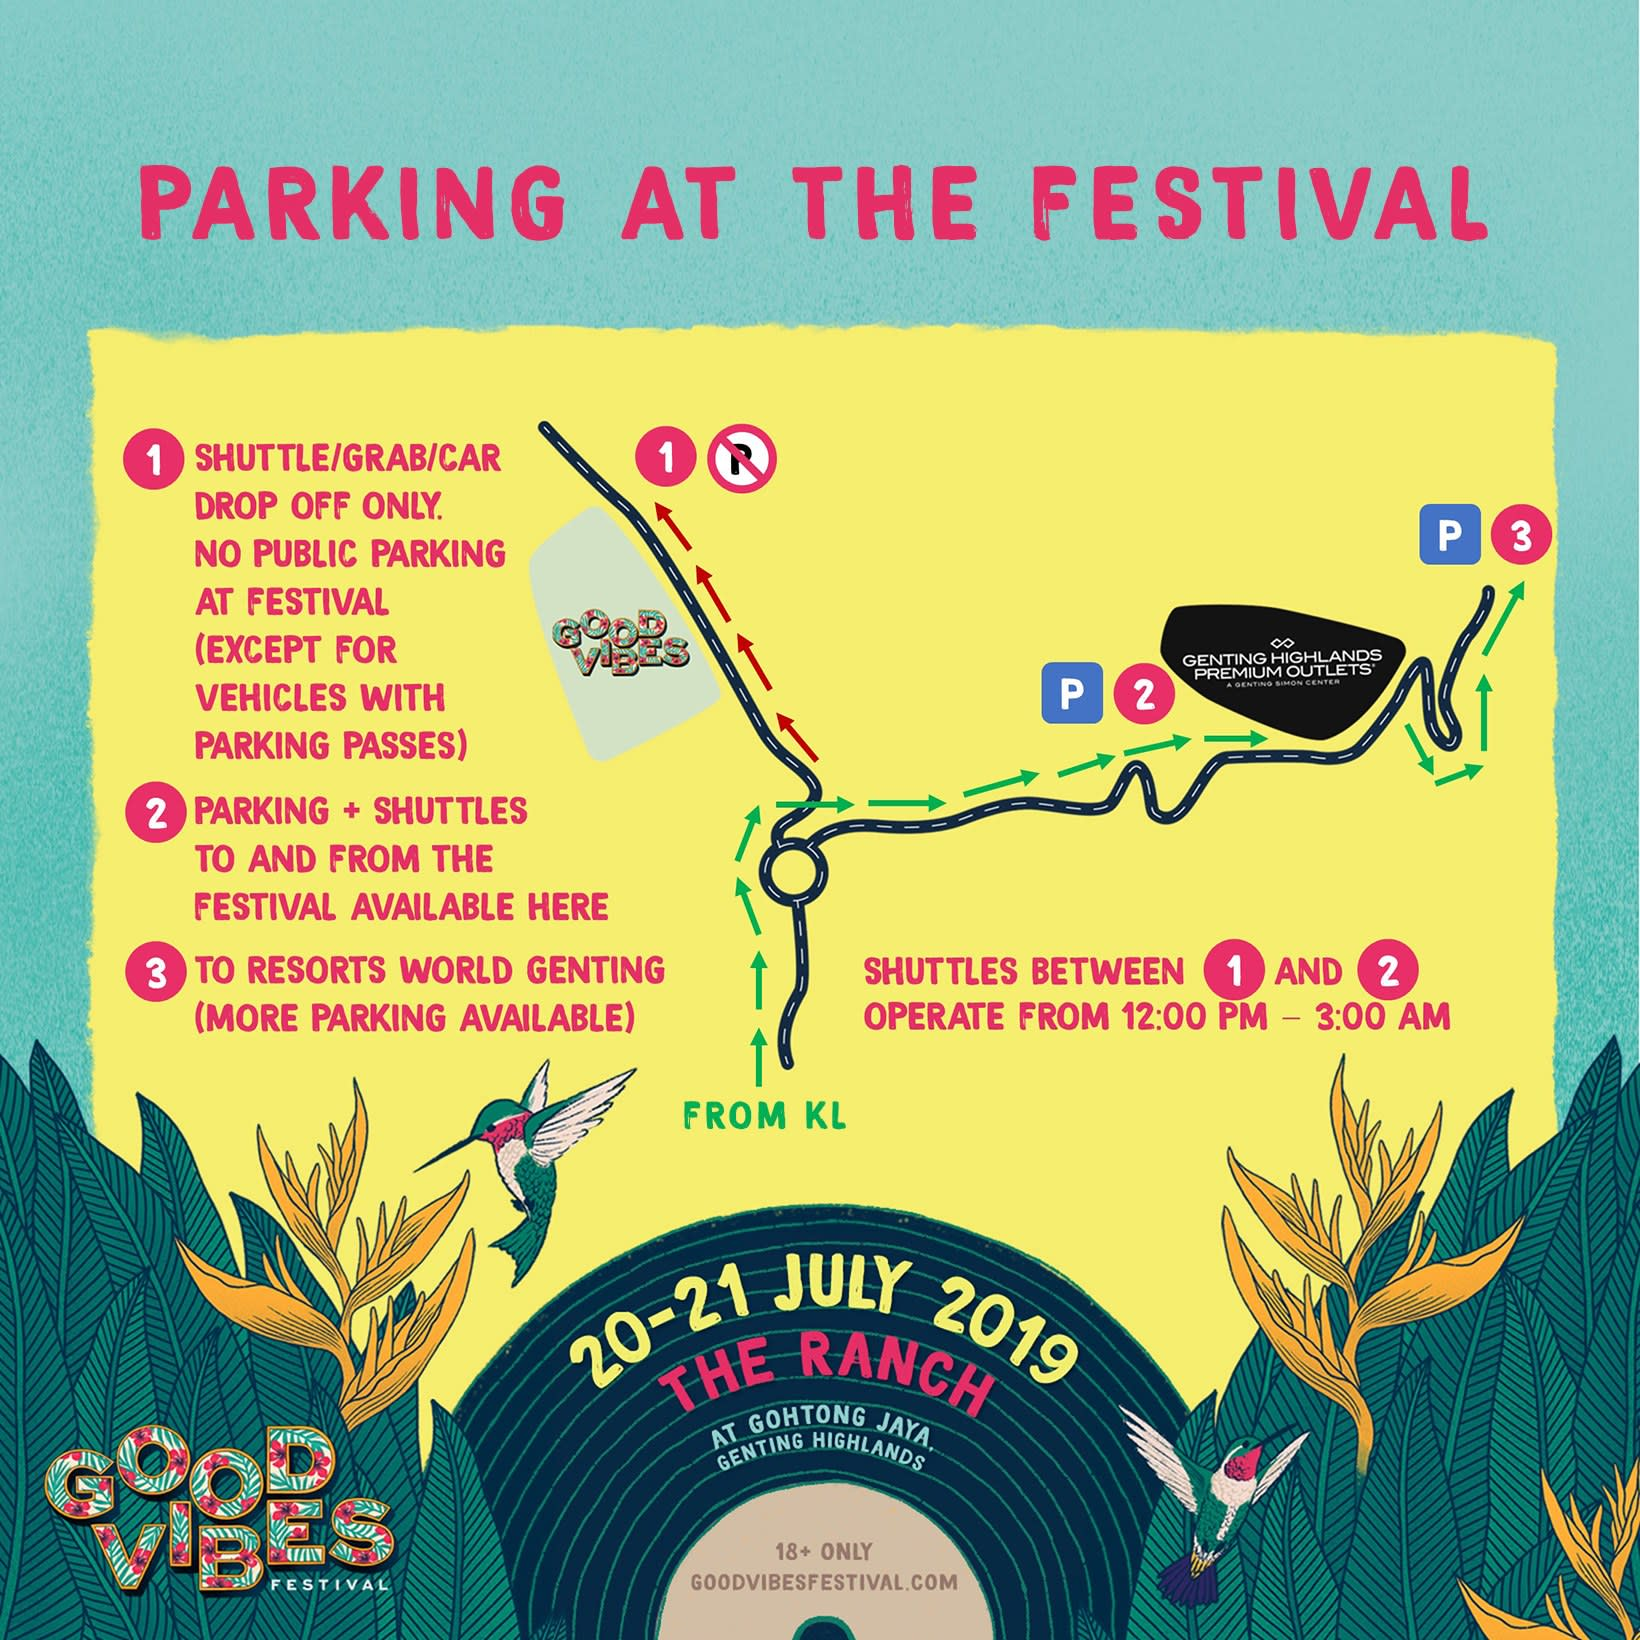 good vibes festival parking